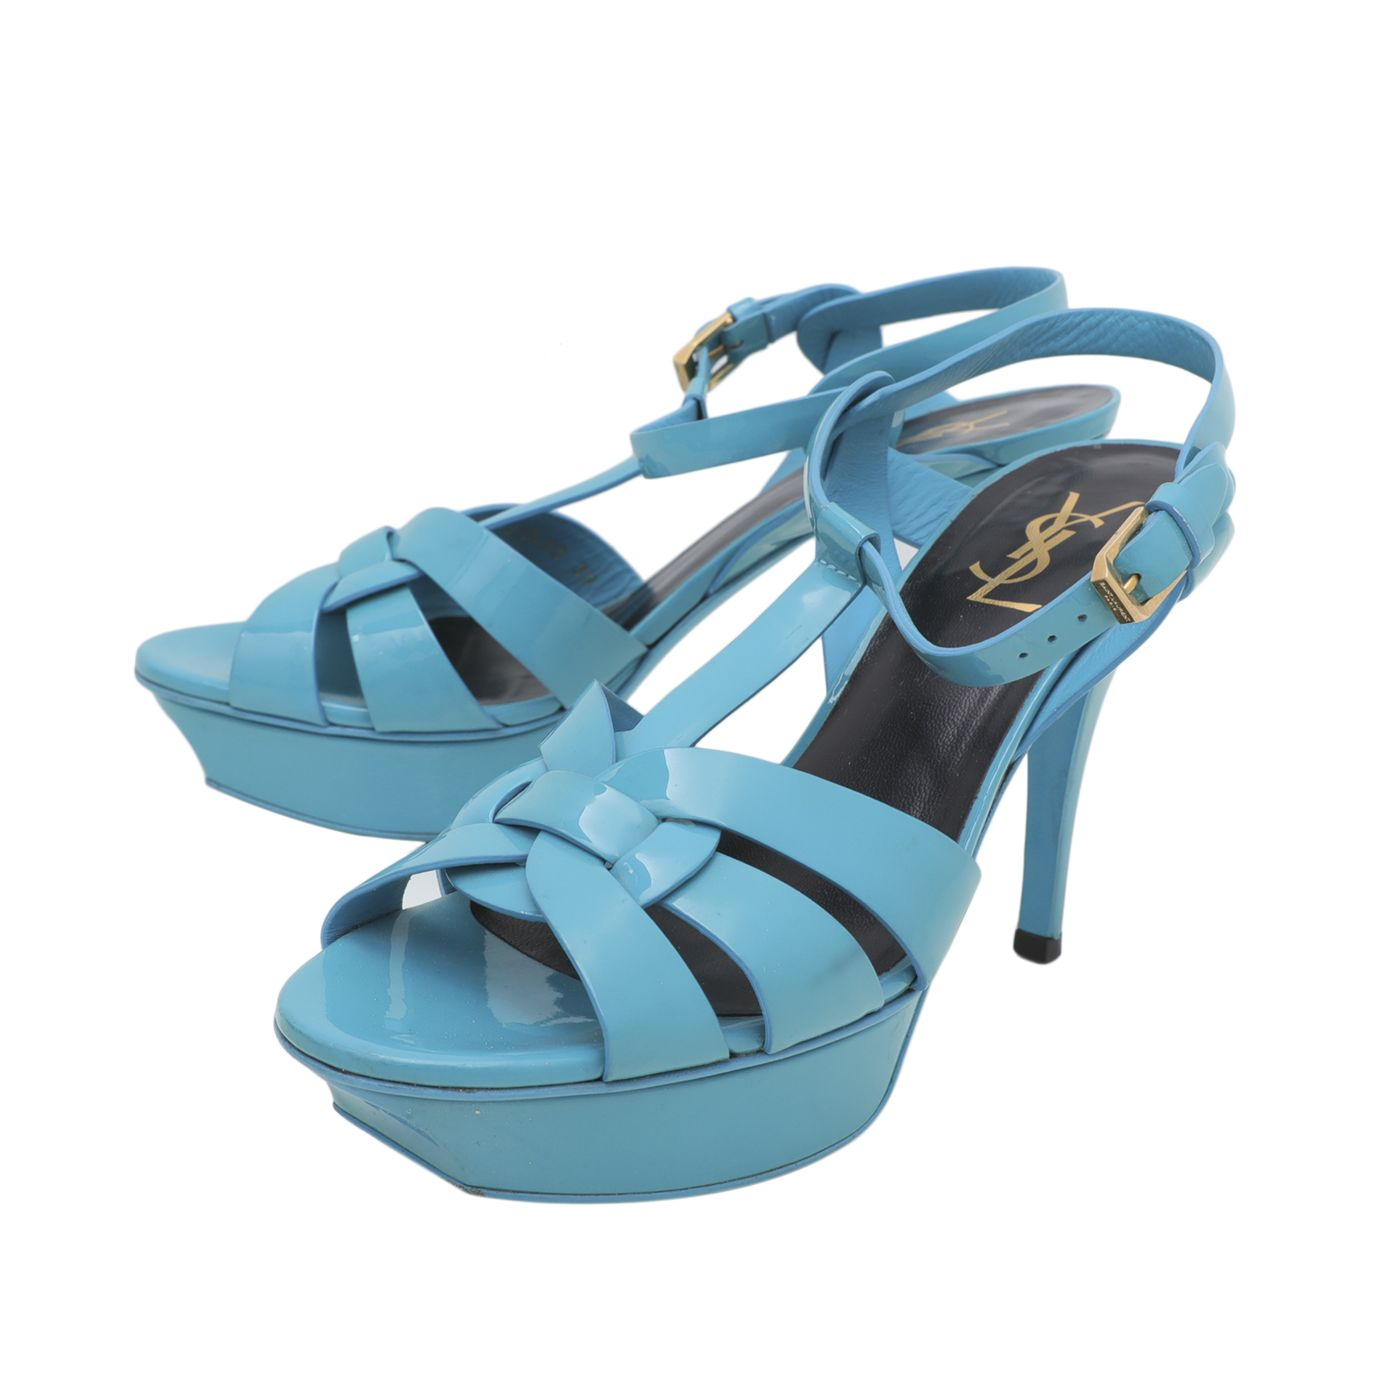 YSL Turquoise Tribute Mid Heels Sandals 39